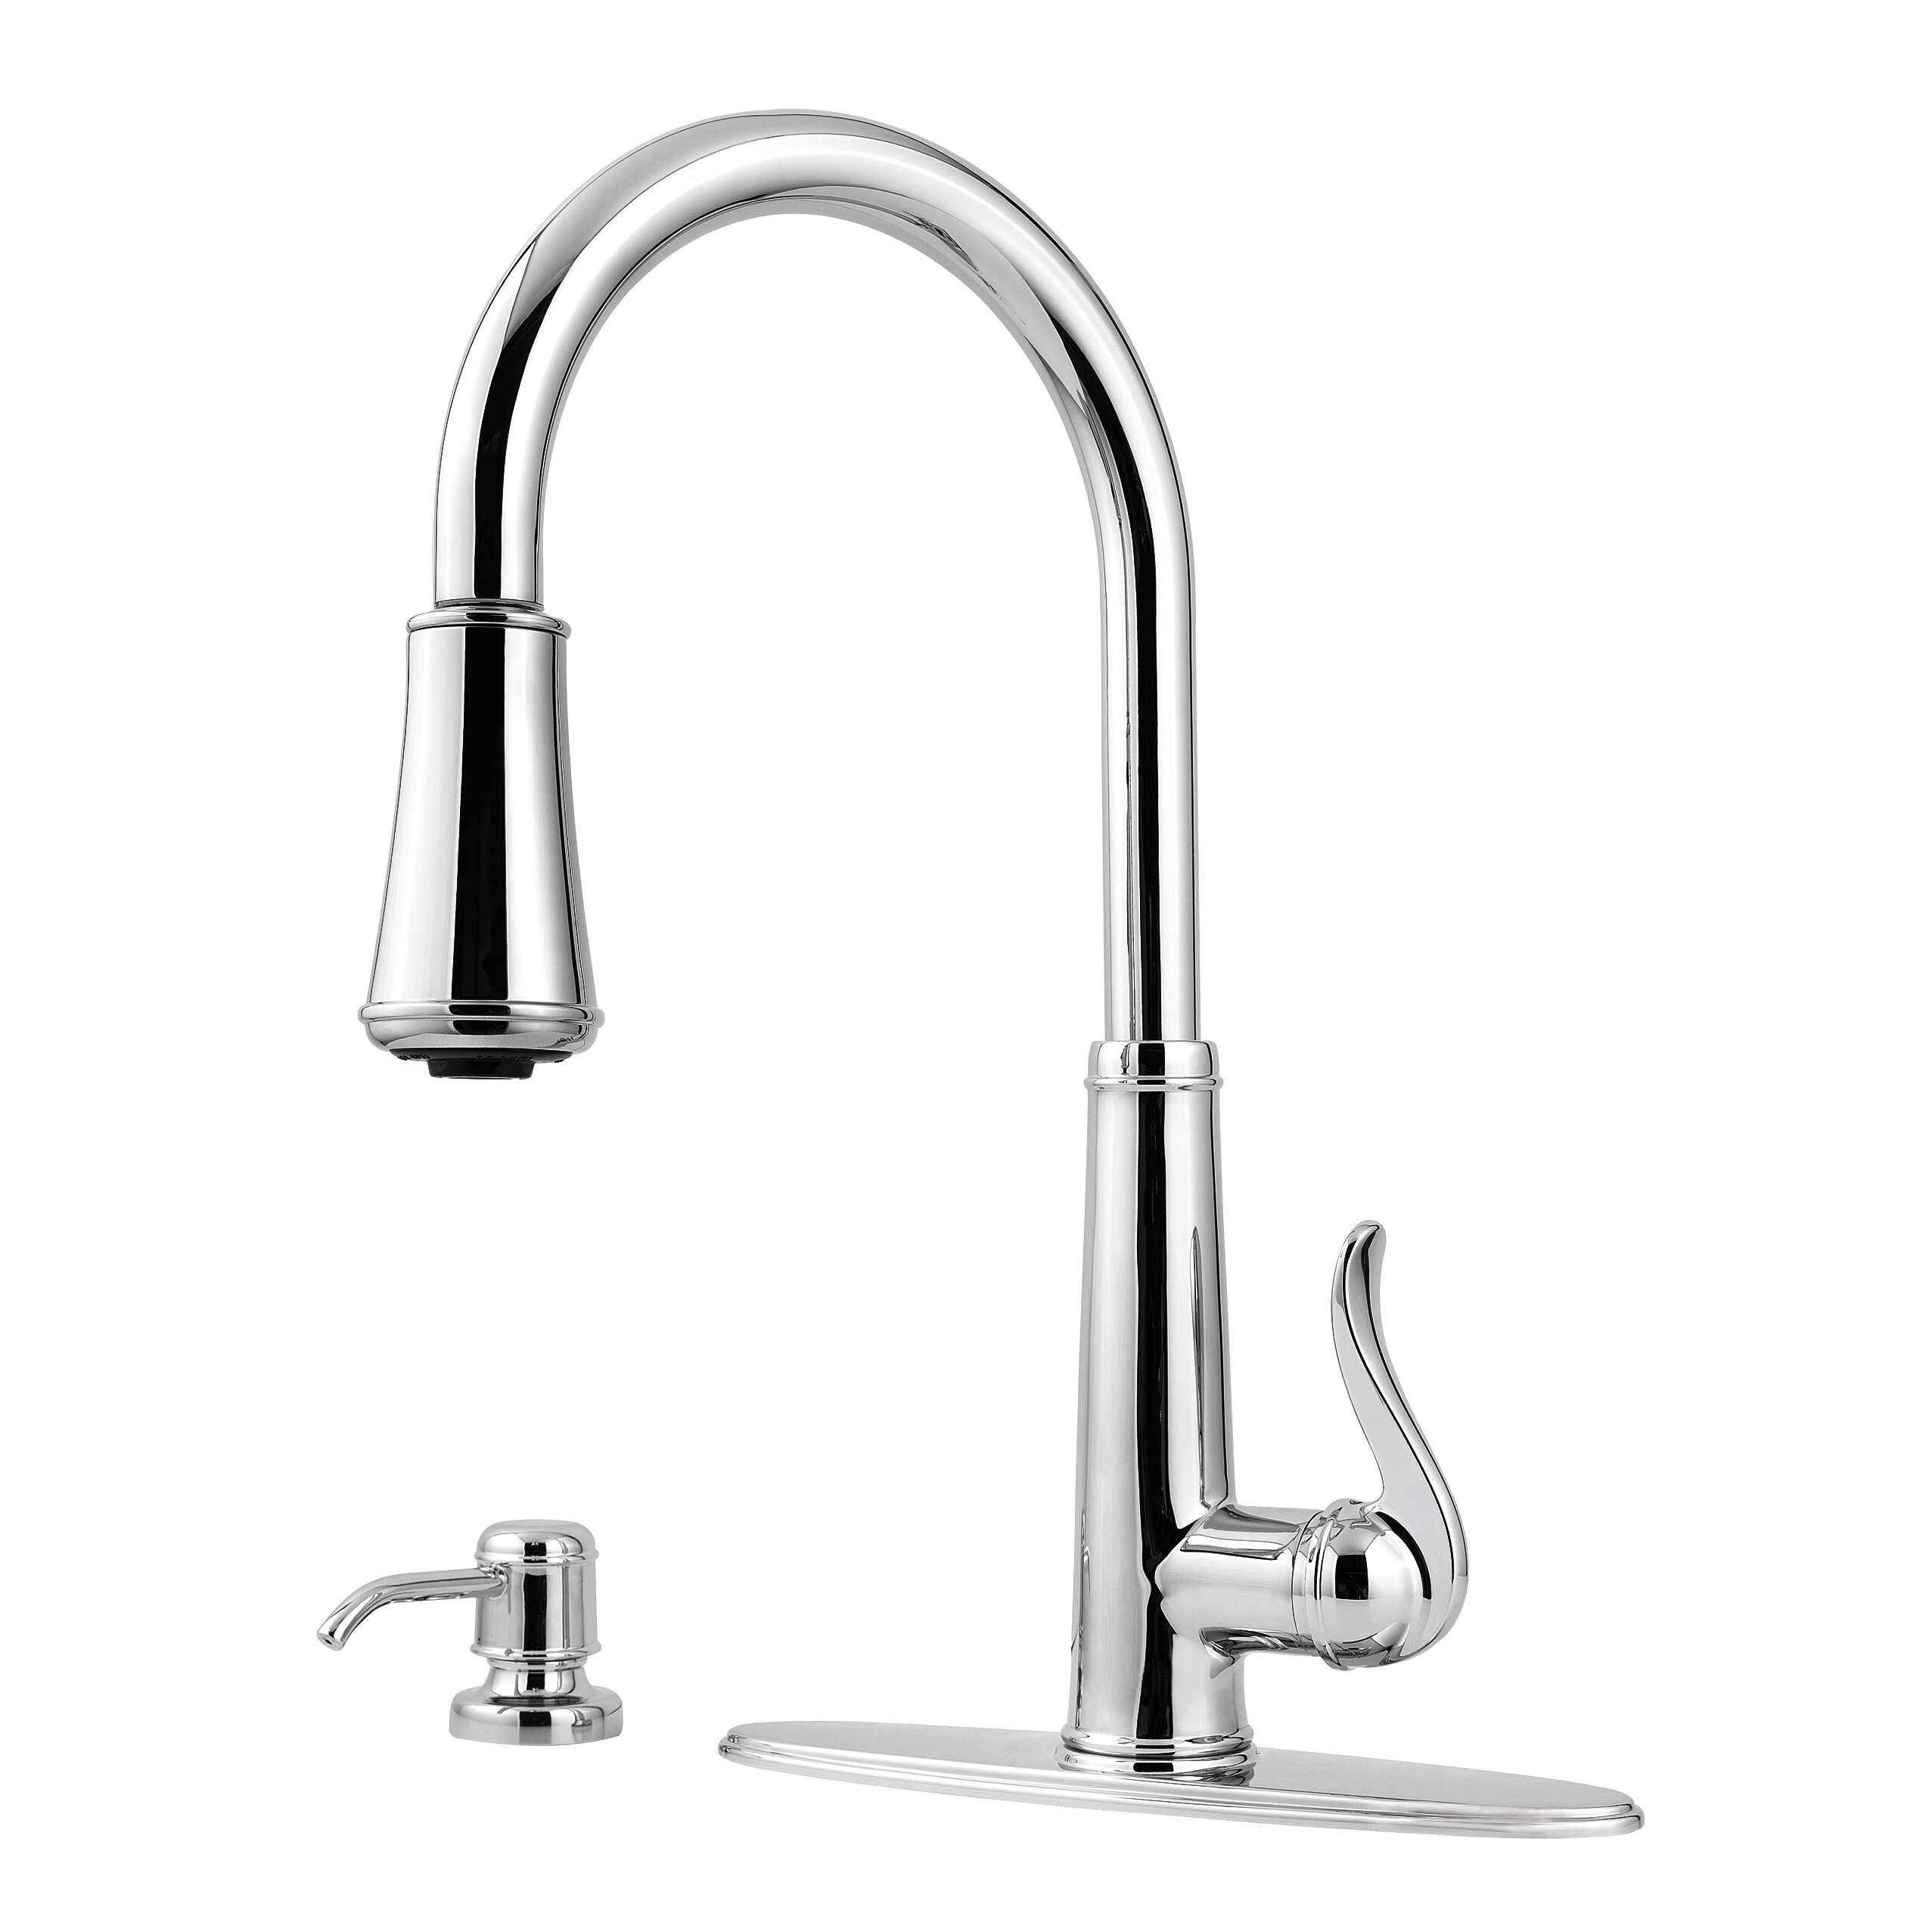 Pfister Kitchen Faucet Reviews Pfister Ashfield Single Handles Deck Mounted Kitchen Faucet With